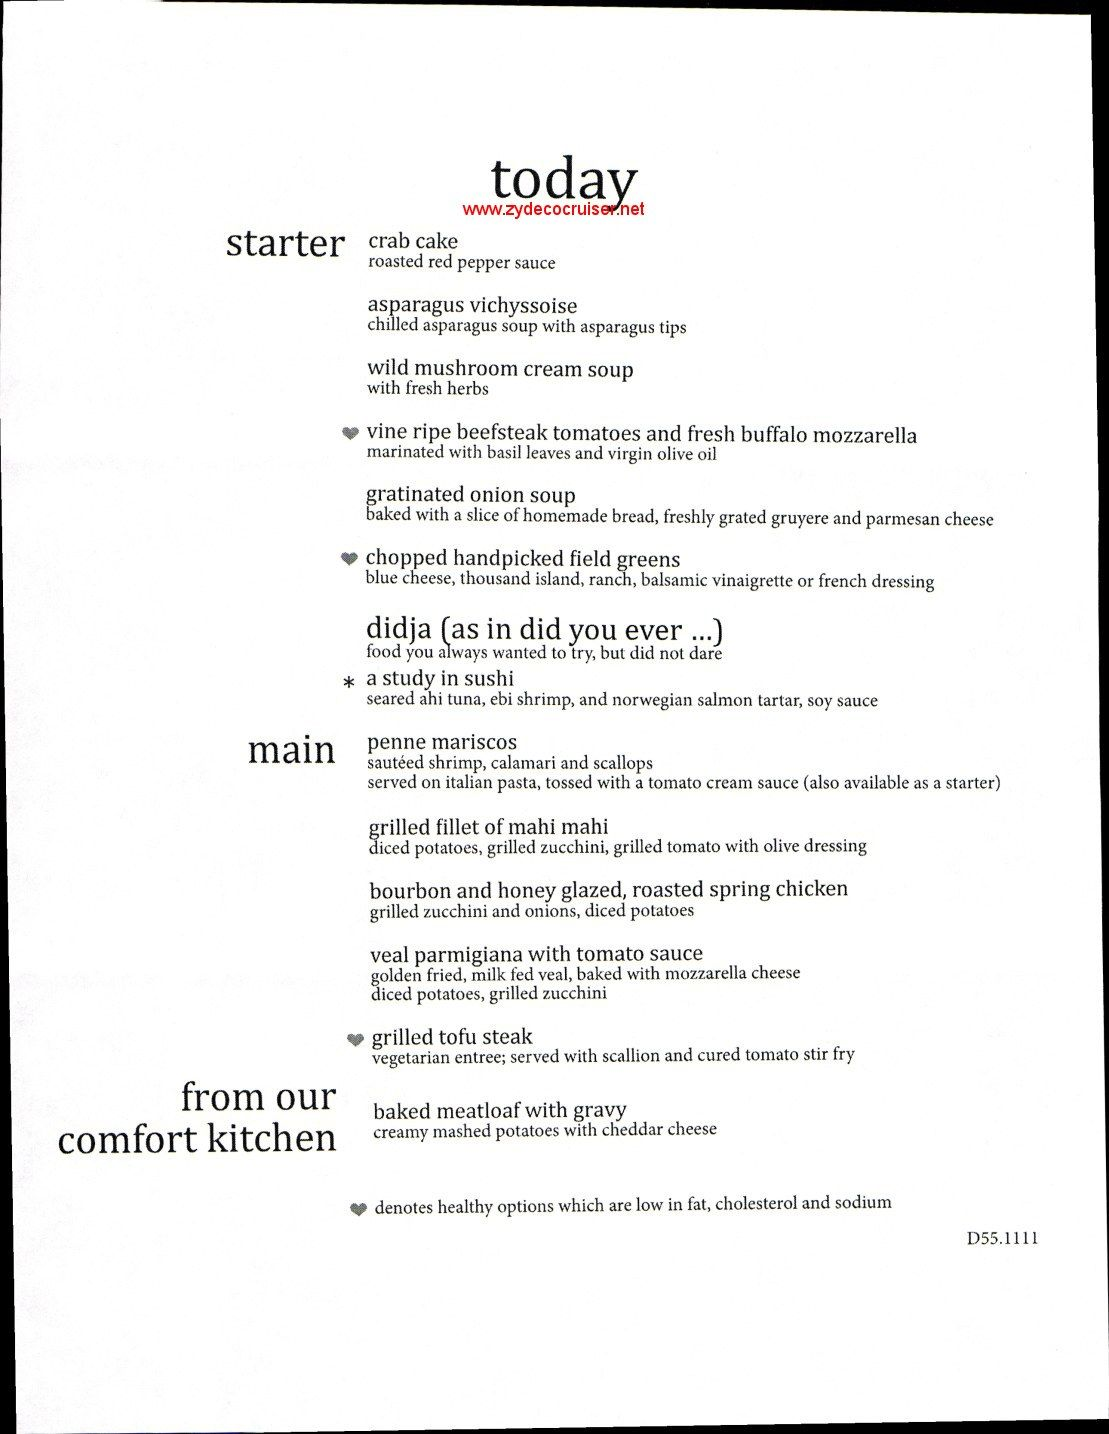 carnival elation mdr dinner menu 5 cruising carnival elation